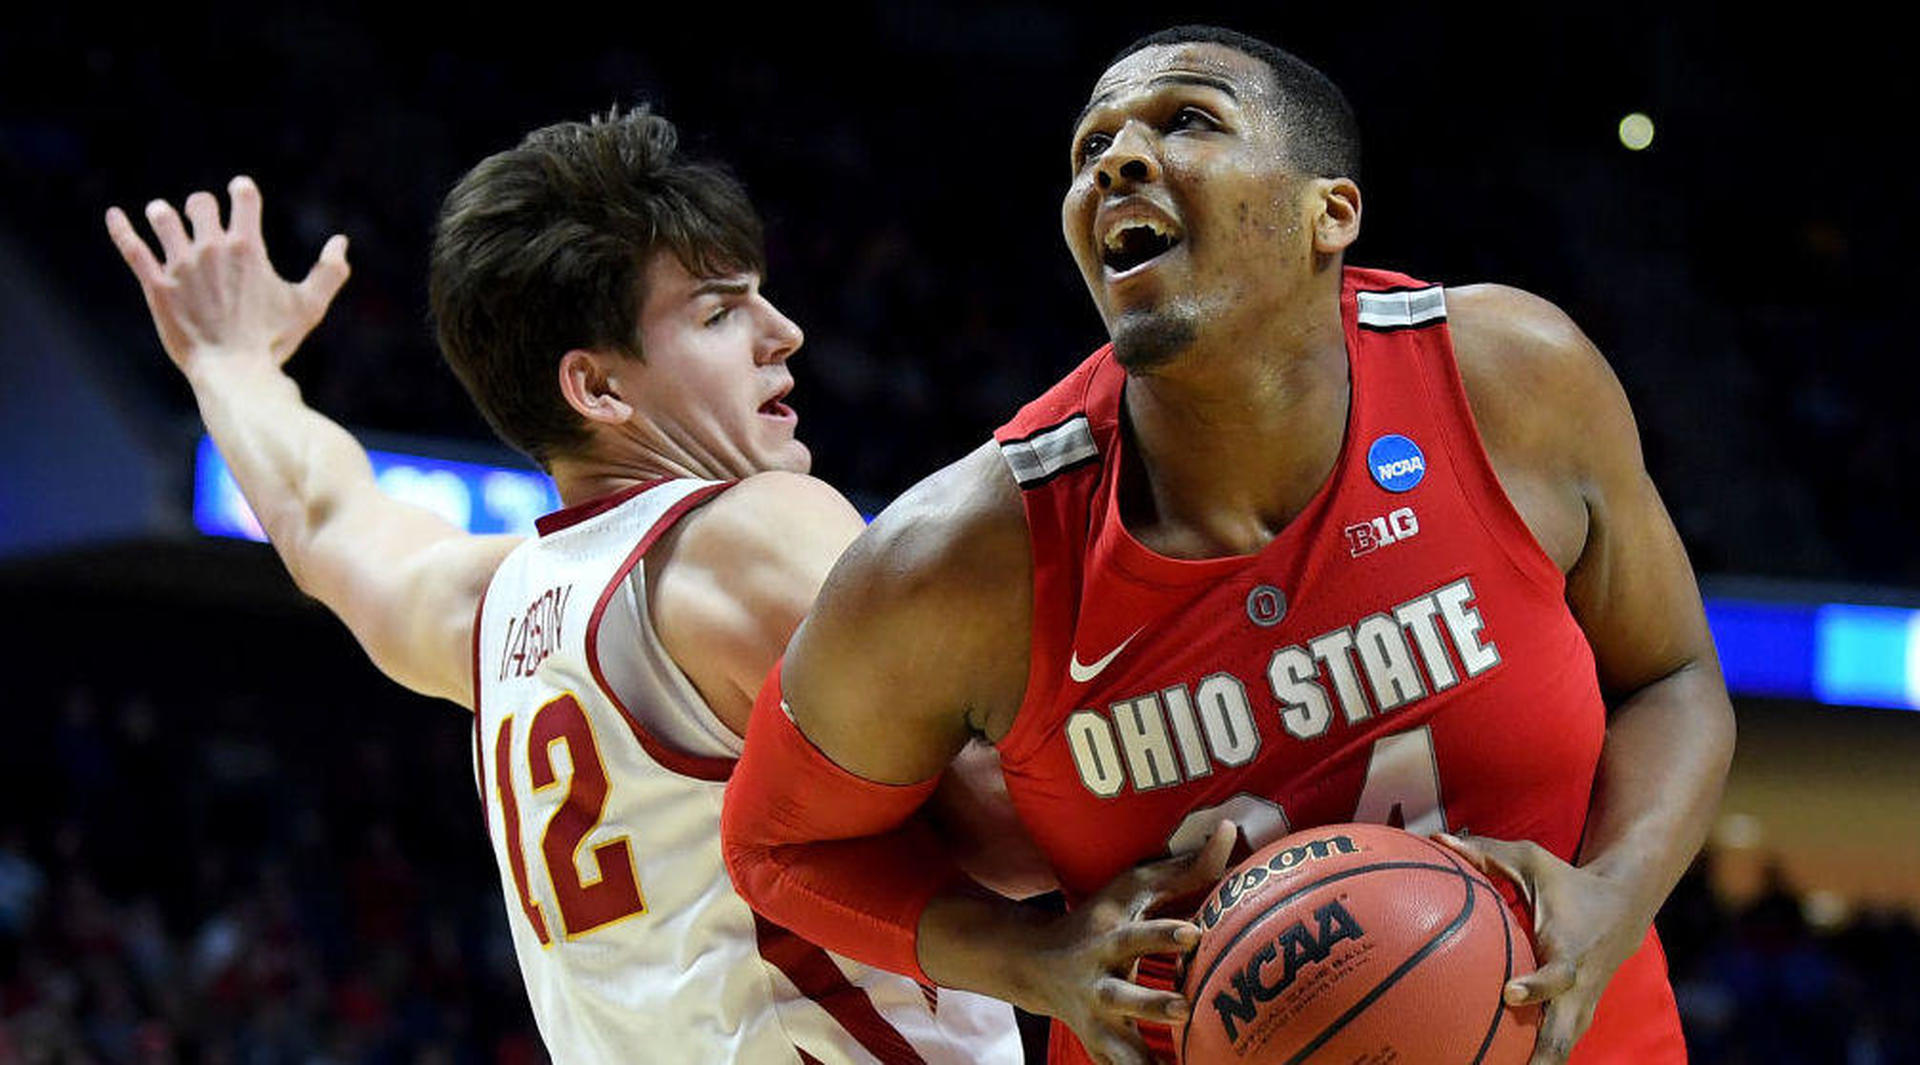 Holtmann deserves more recognition for Ohio State's success